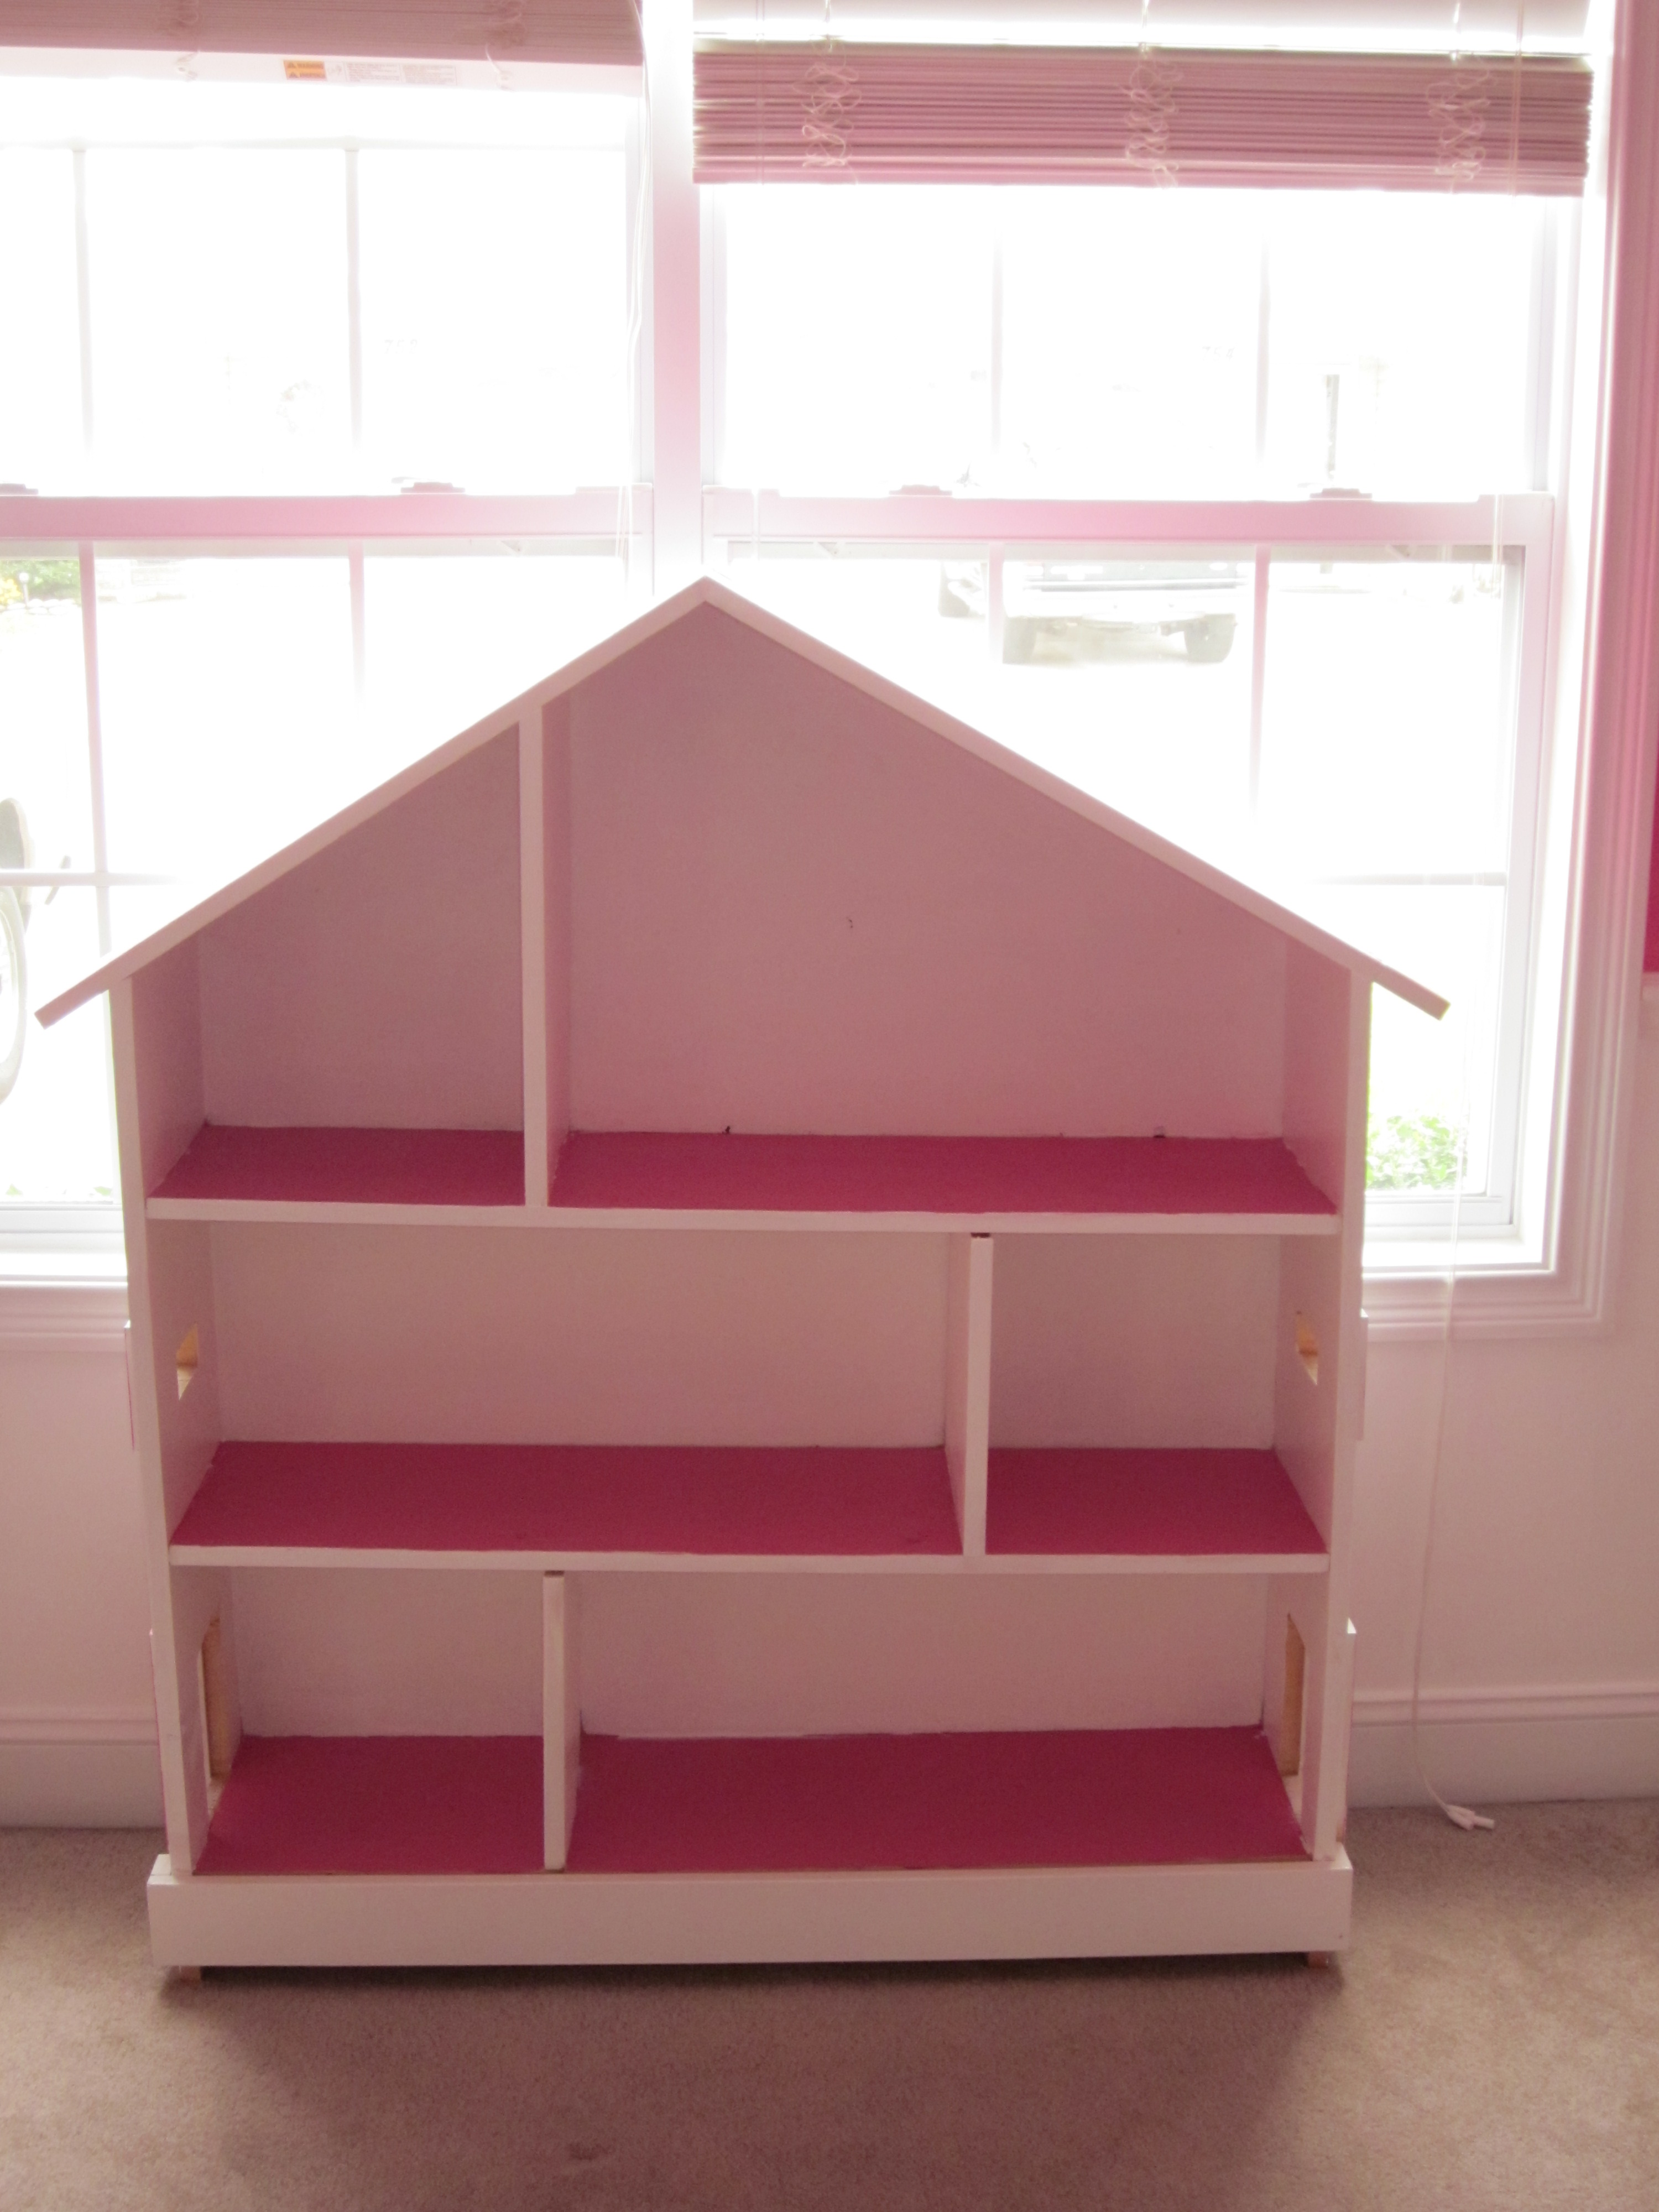 Ana white doll house book shelf diy projects doll house book shelf solutioingenieria Image collections